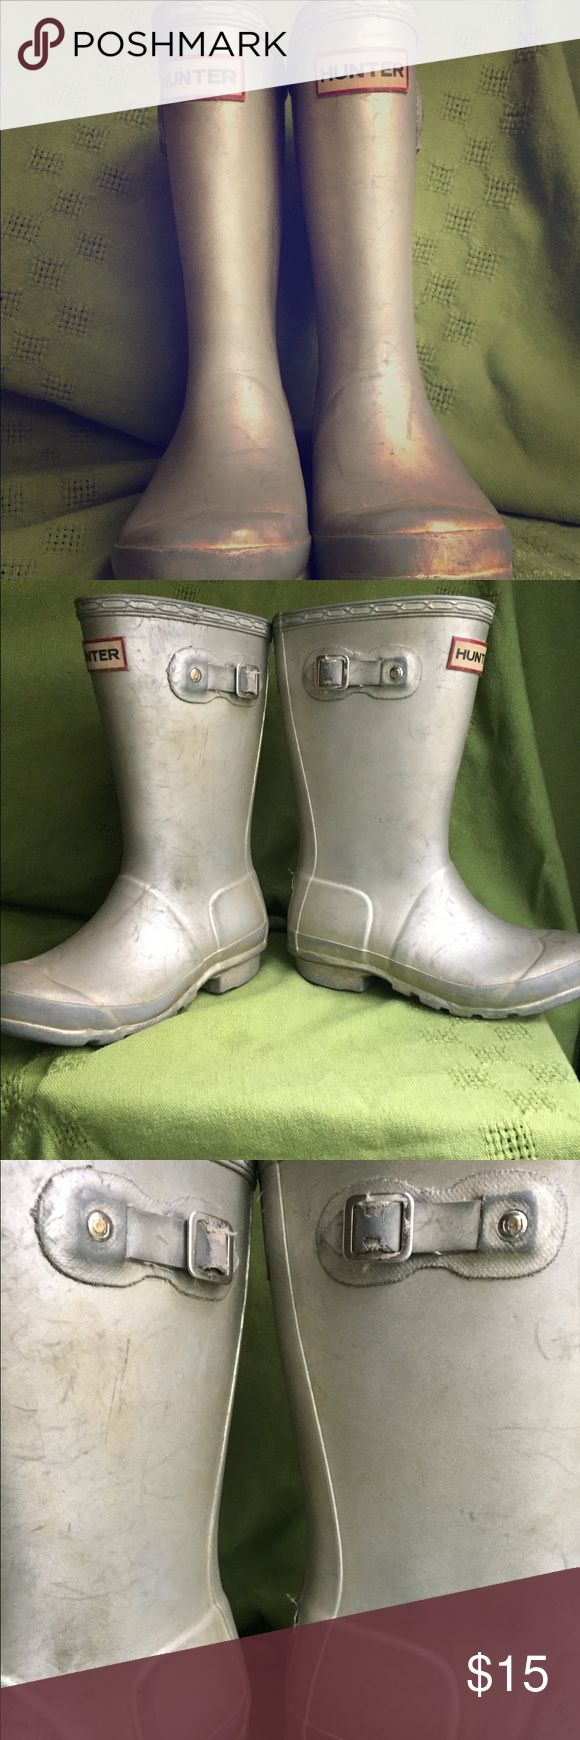 ☔️☔️HUNTER kids rubber rain boots. Wellies! ☔️☔️ Kid's hunter rain boots SILVER size 13  Well loved with significant cosmetic wear, but zero leaks.  From a smoke and pet free home Hunter Shoes Rain & Snow Boots